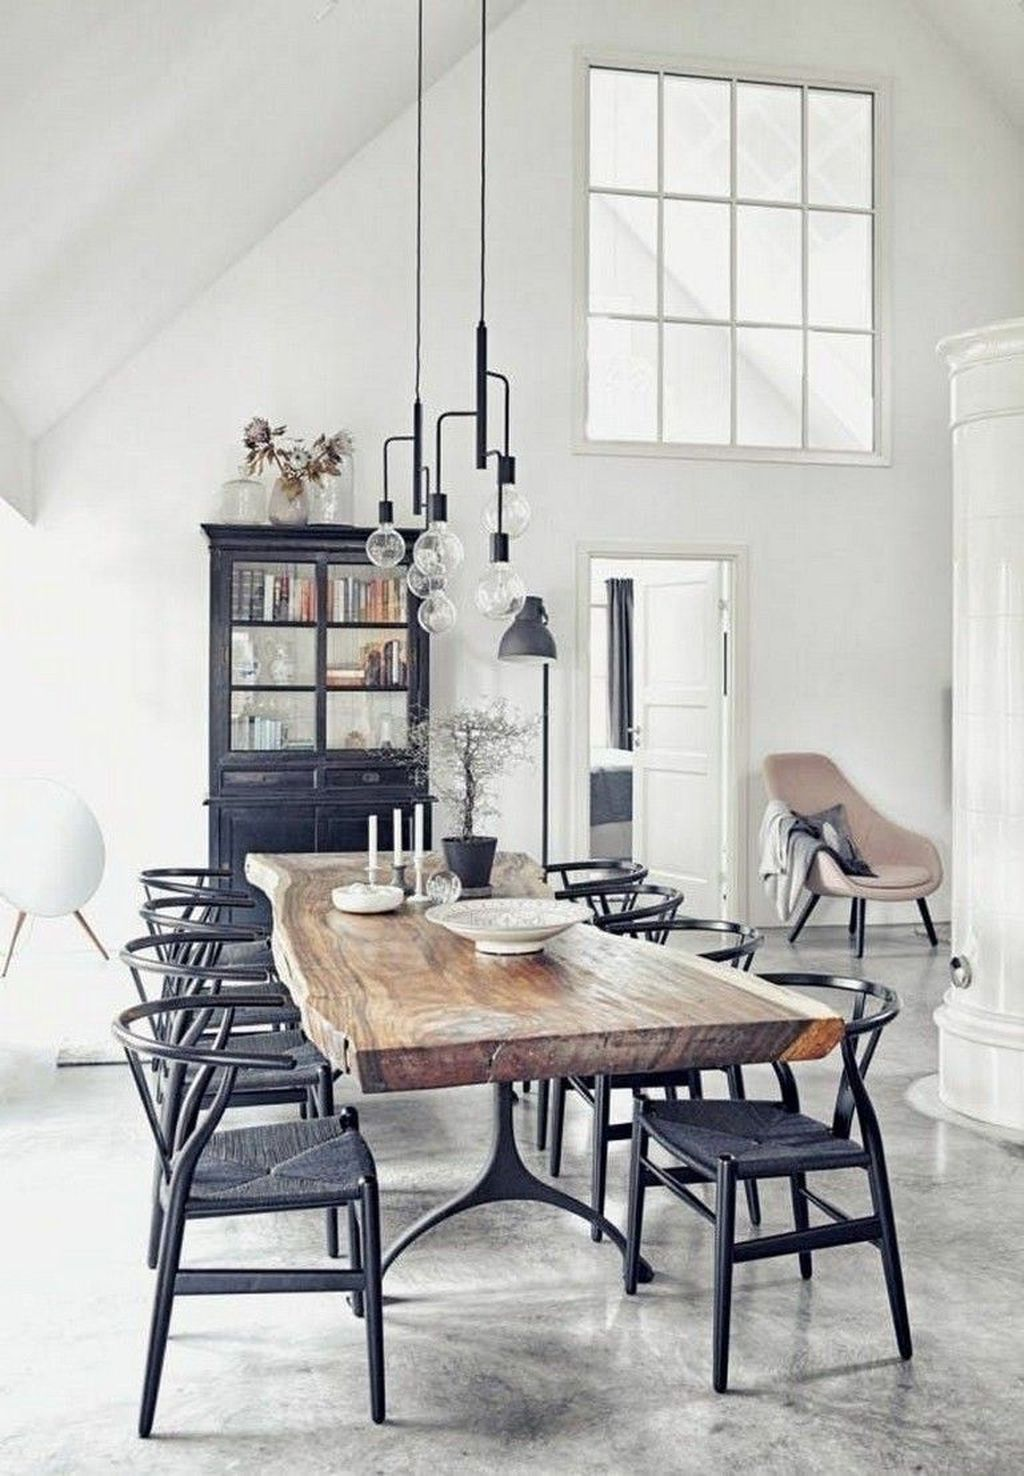 Admirable Dining Room Design Ideas You Will Love 16